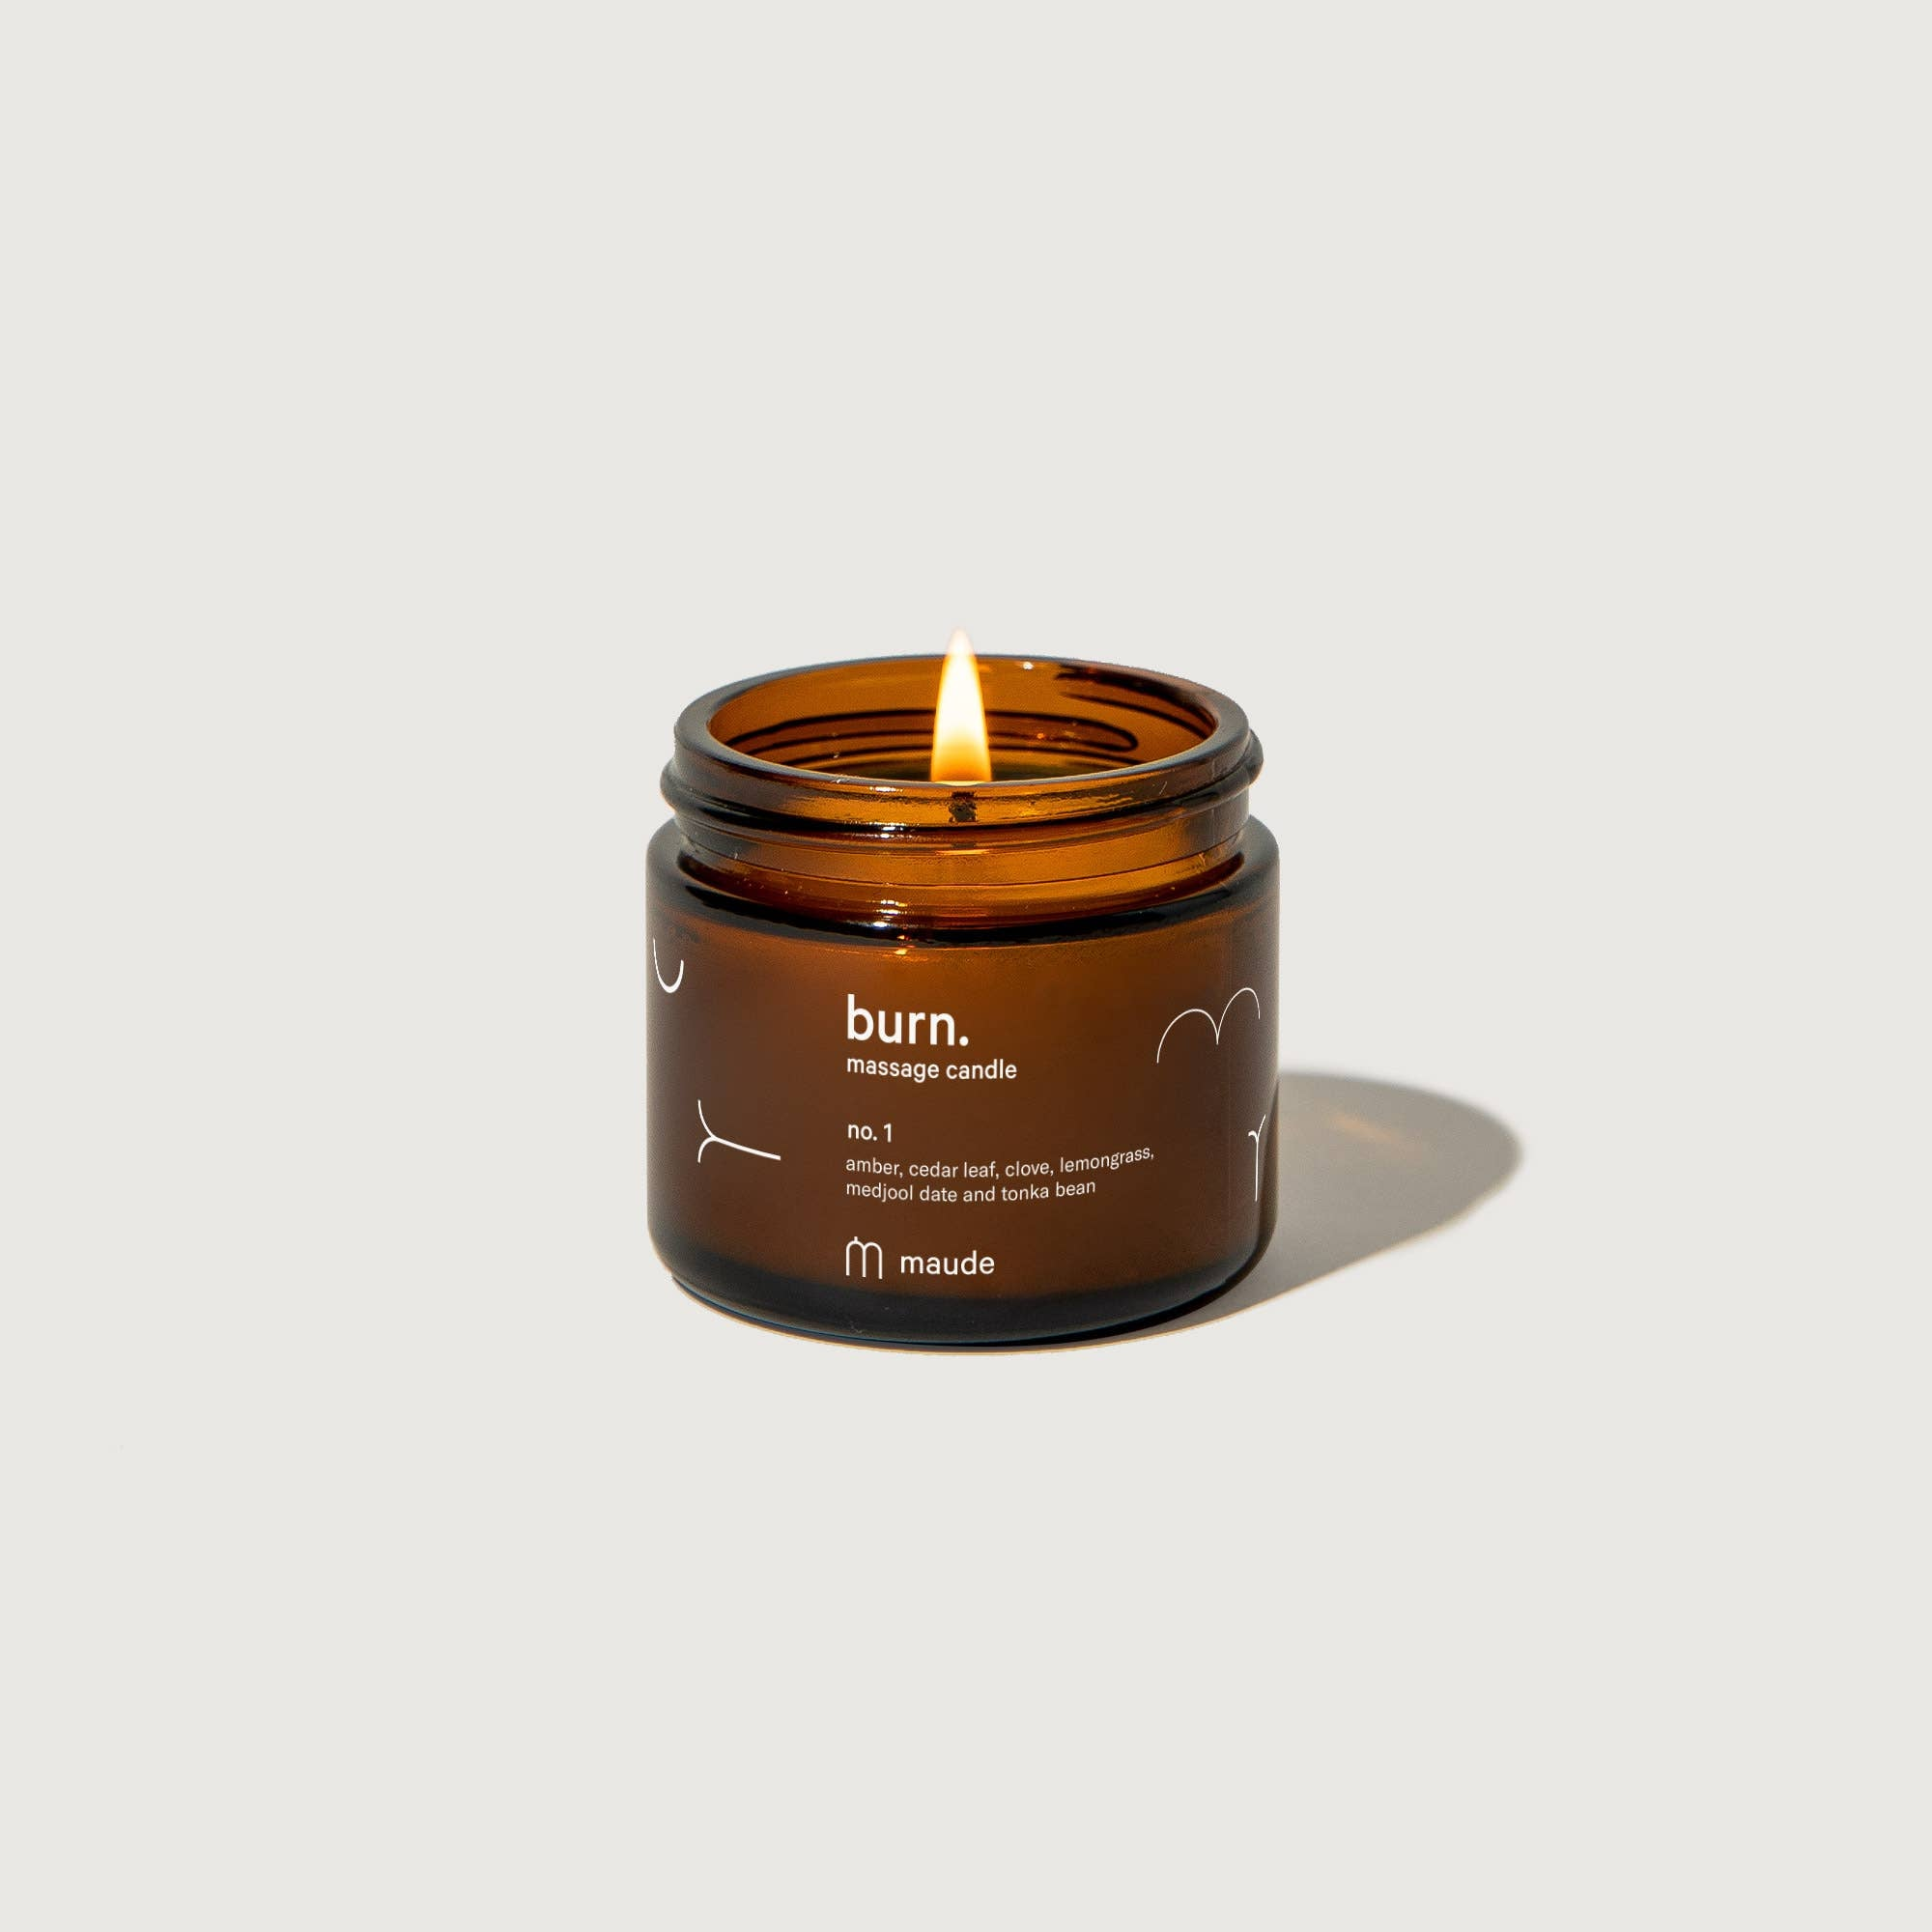 Burn no. 1 - 2oz skin-softening massage candle - The Lake